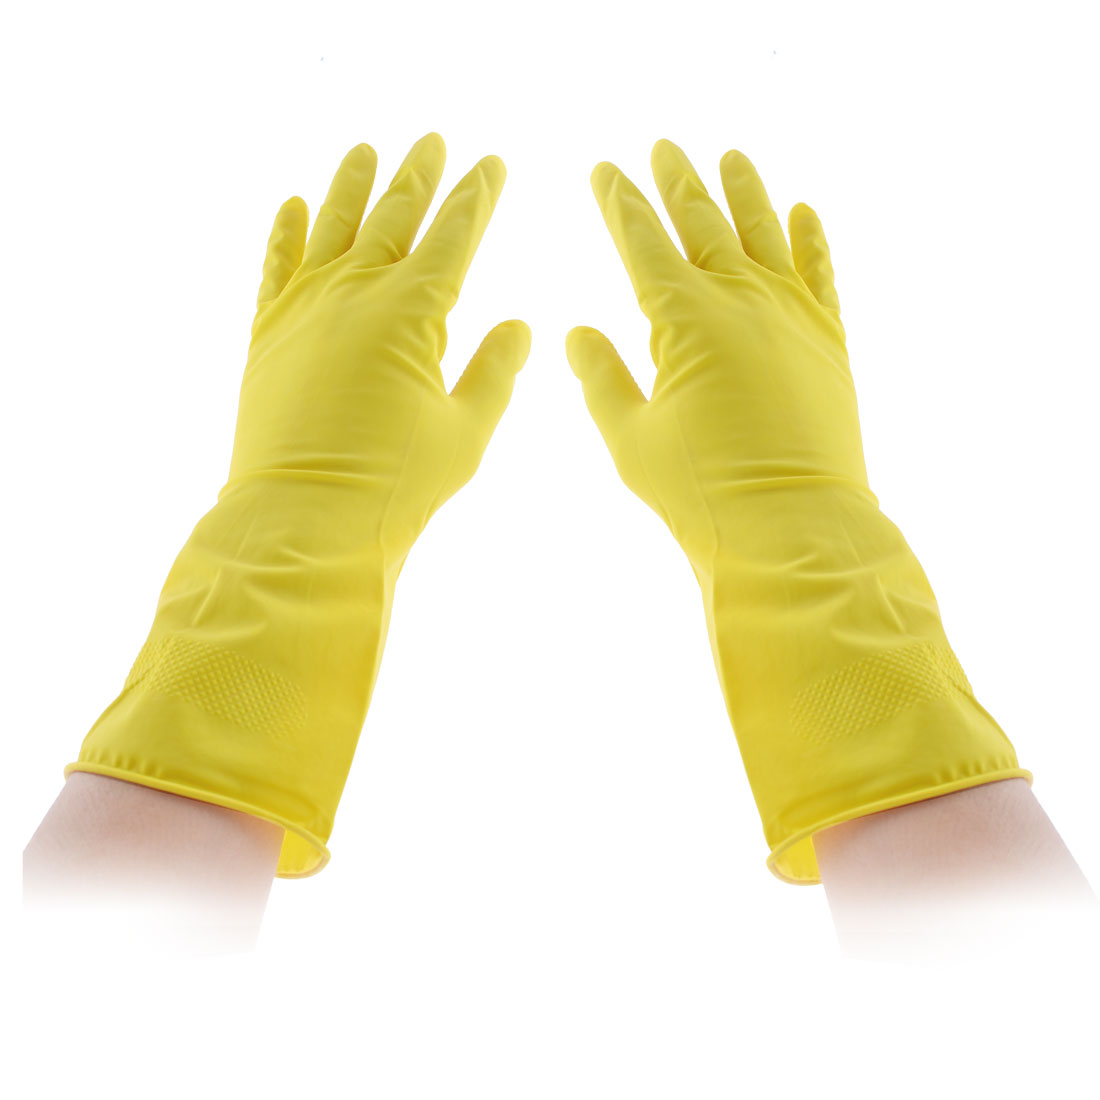 Houseworking Yellow Rubber Dish Clothes Washing Cleaning Gloves Pair